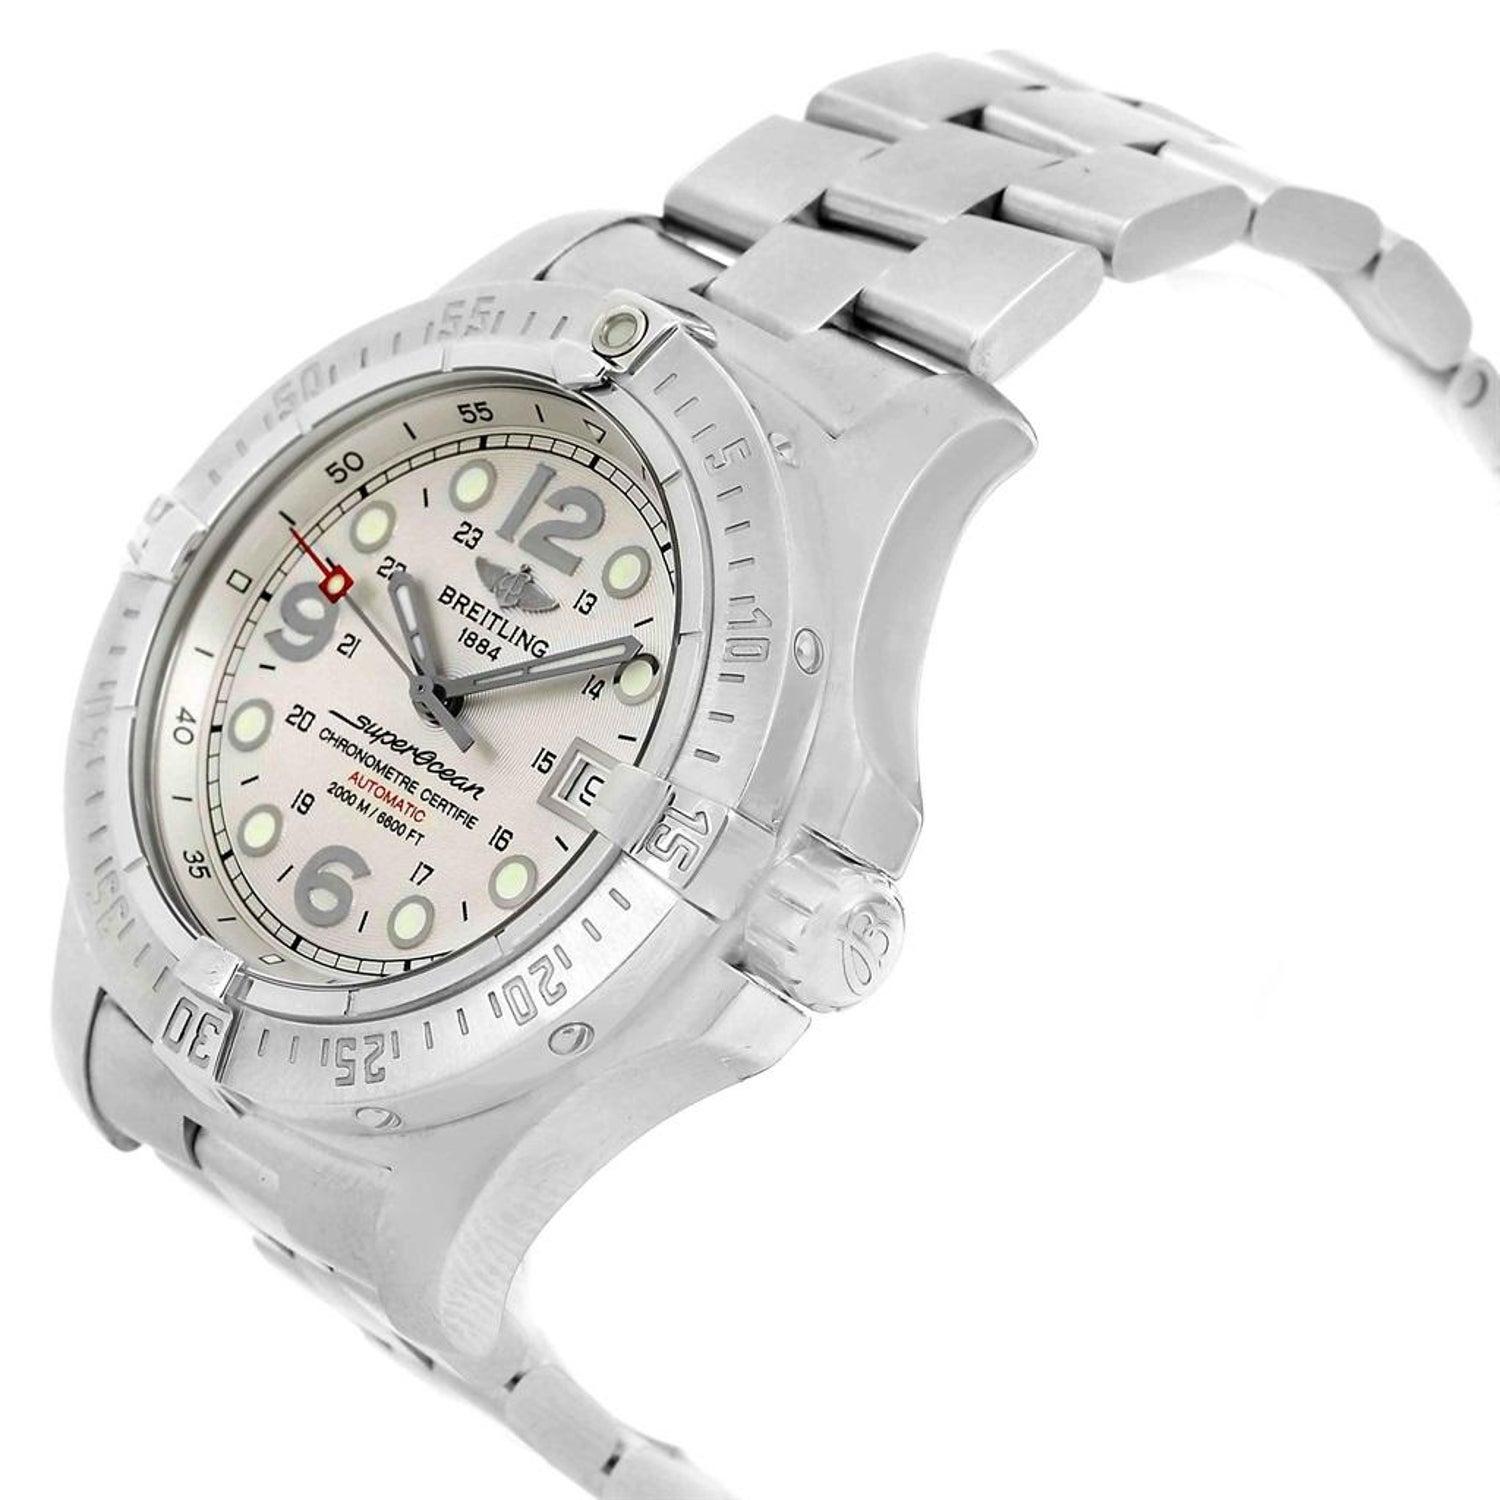 6e5be7aa2f0 Breitling Aeromarine Superocean Steelfish Silver Dial Men s Watch A17390  For Sale at 1stdibs